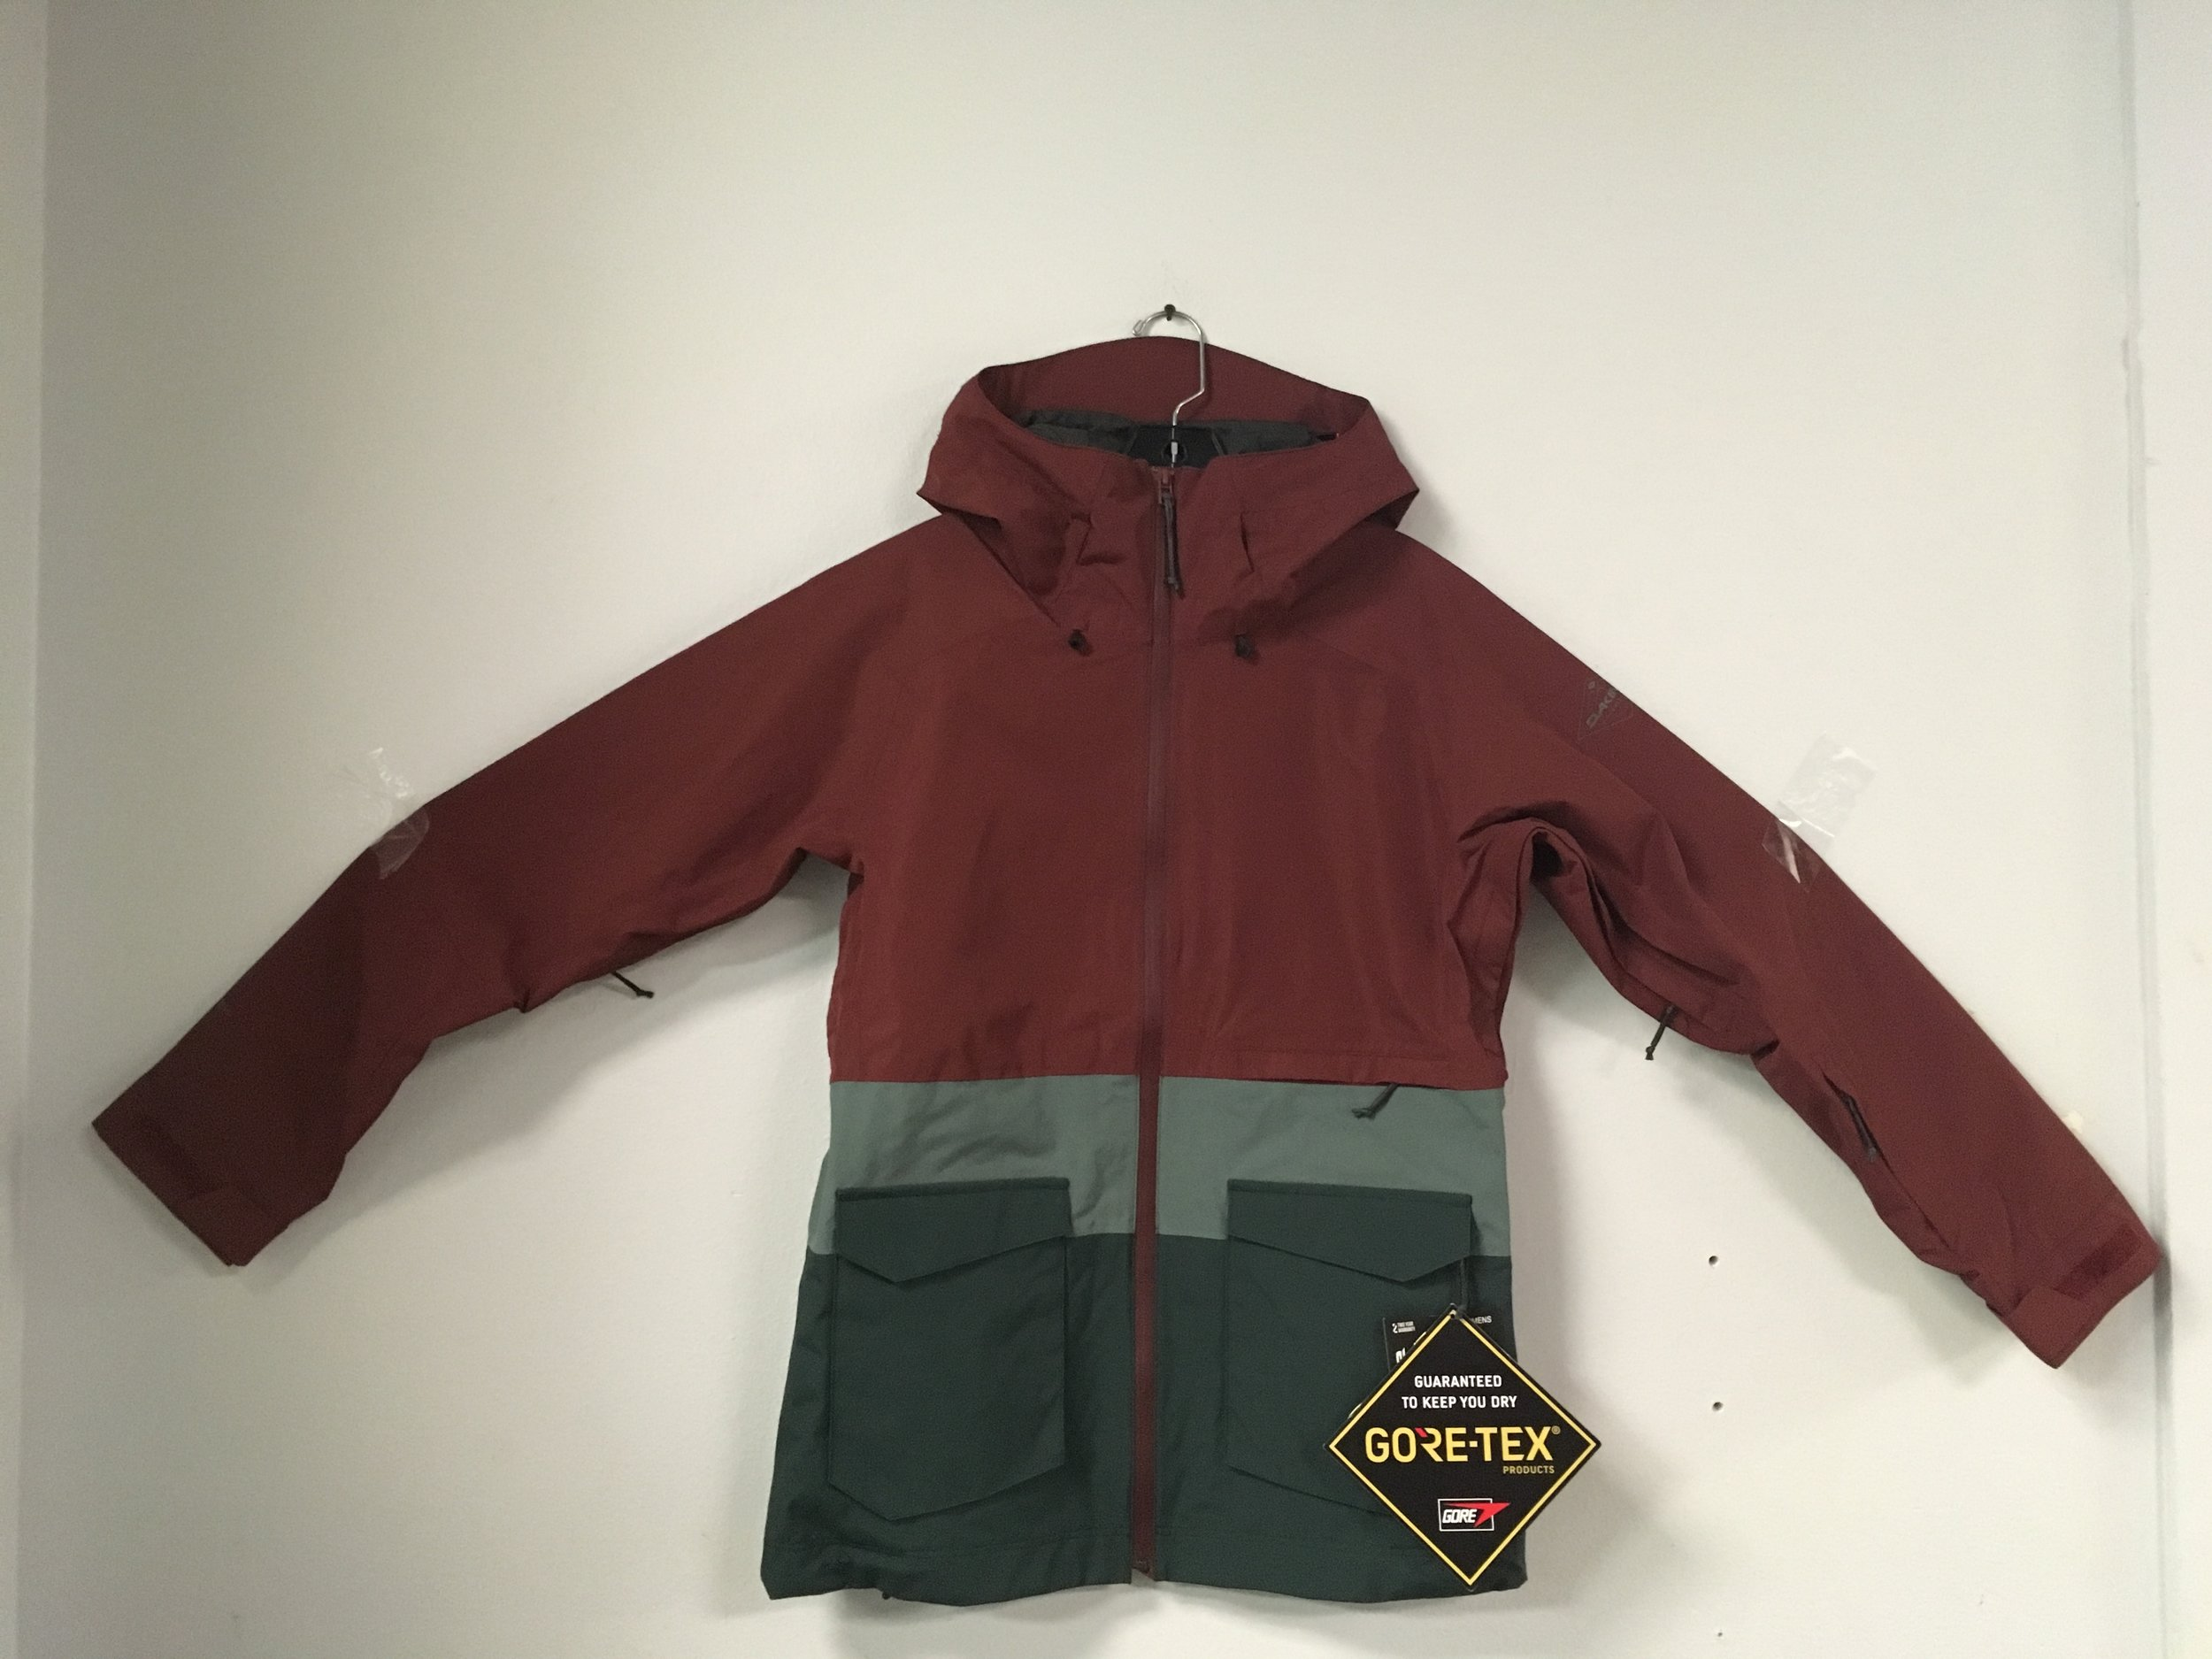 Stay dry in the wet snow and hurricane force winds with Dakine's Remington 2L Gore-Tex jacket! The Remington has fully taped seams, YKK Aquaguard zippers, and 2L Gore-Tex fabric. Retail is listed at $340 but we have you covered at $179. The size is a women's medium.